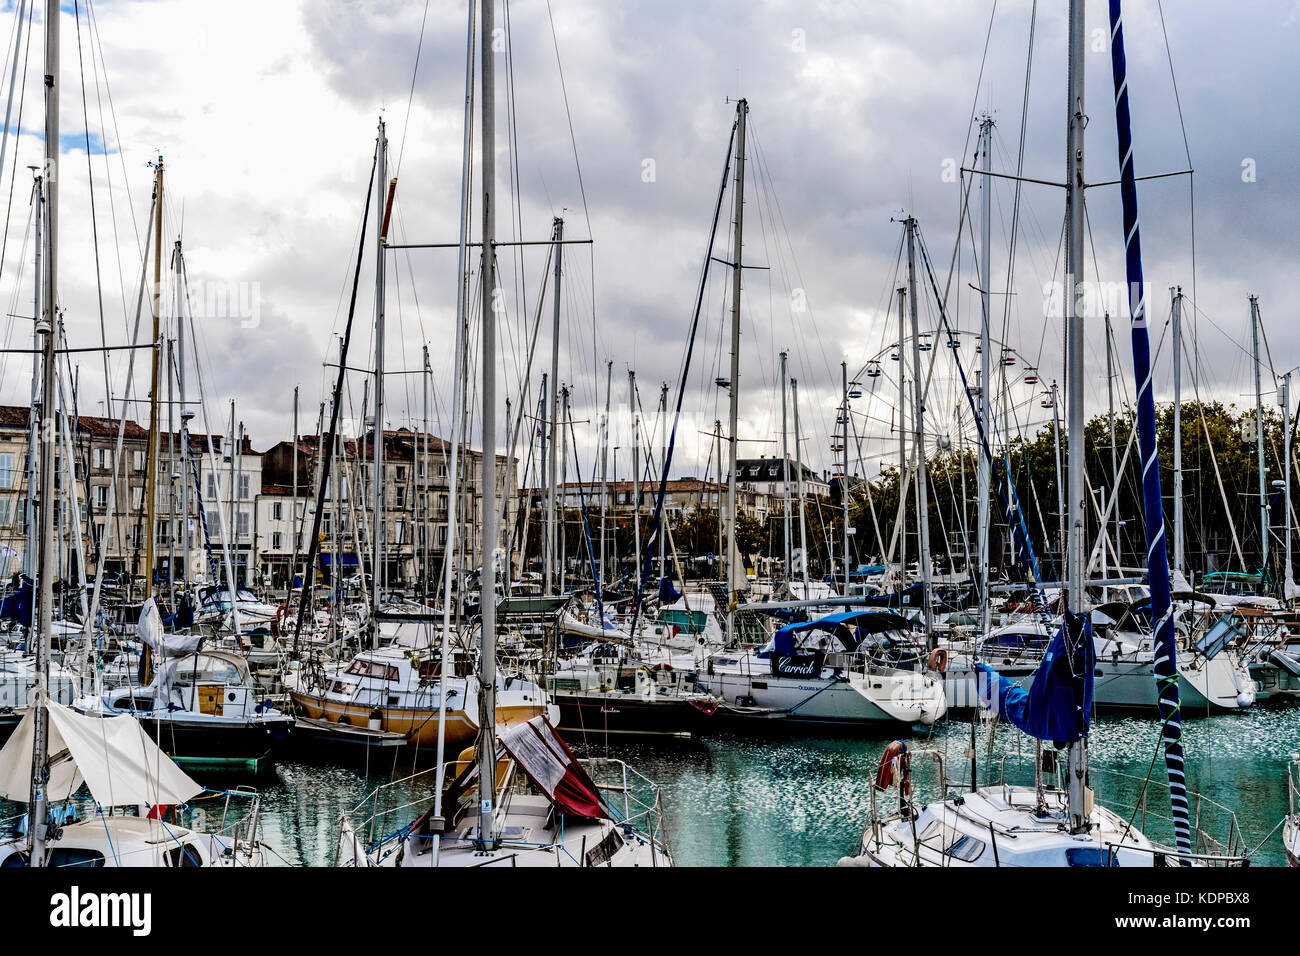 Kai la stock photos kai la stock images alamy - Parking du vieux port la rochelle ...